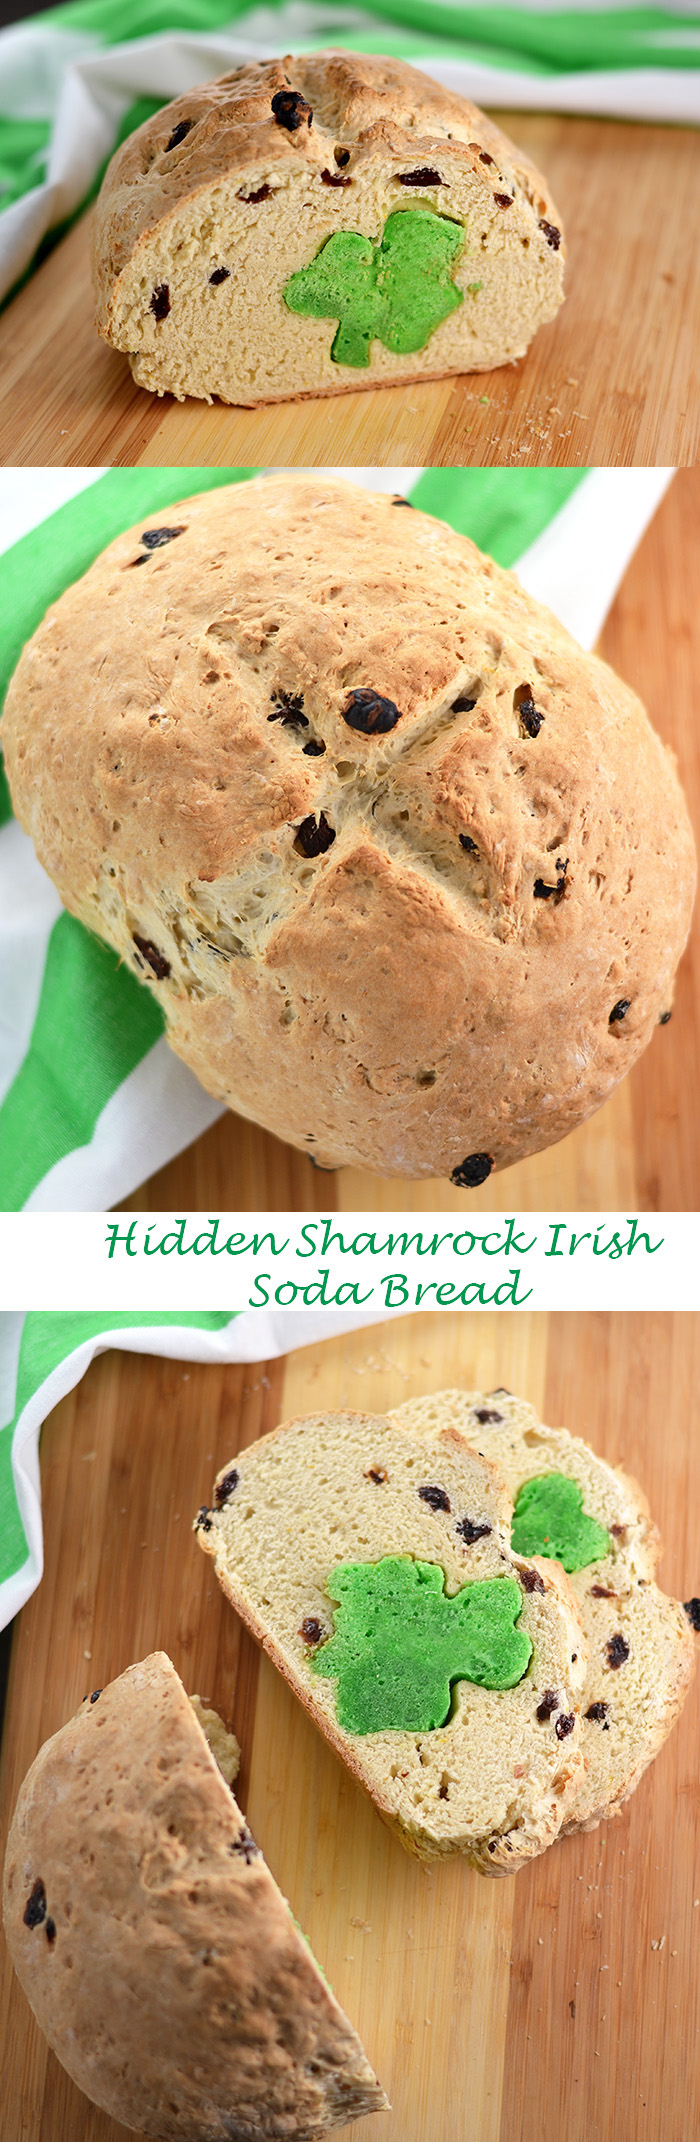 Hidden Shamrock Soda Bread